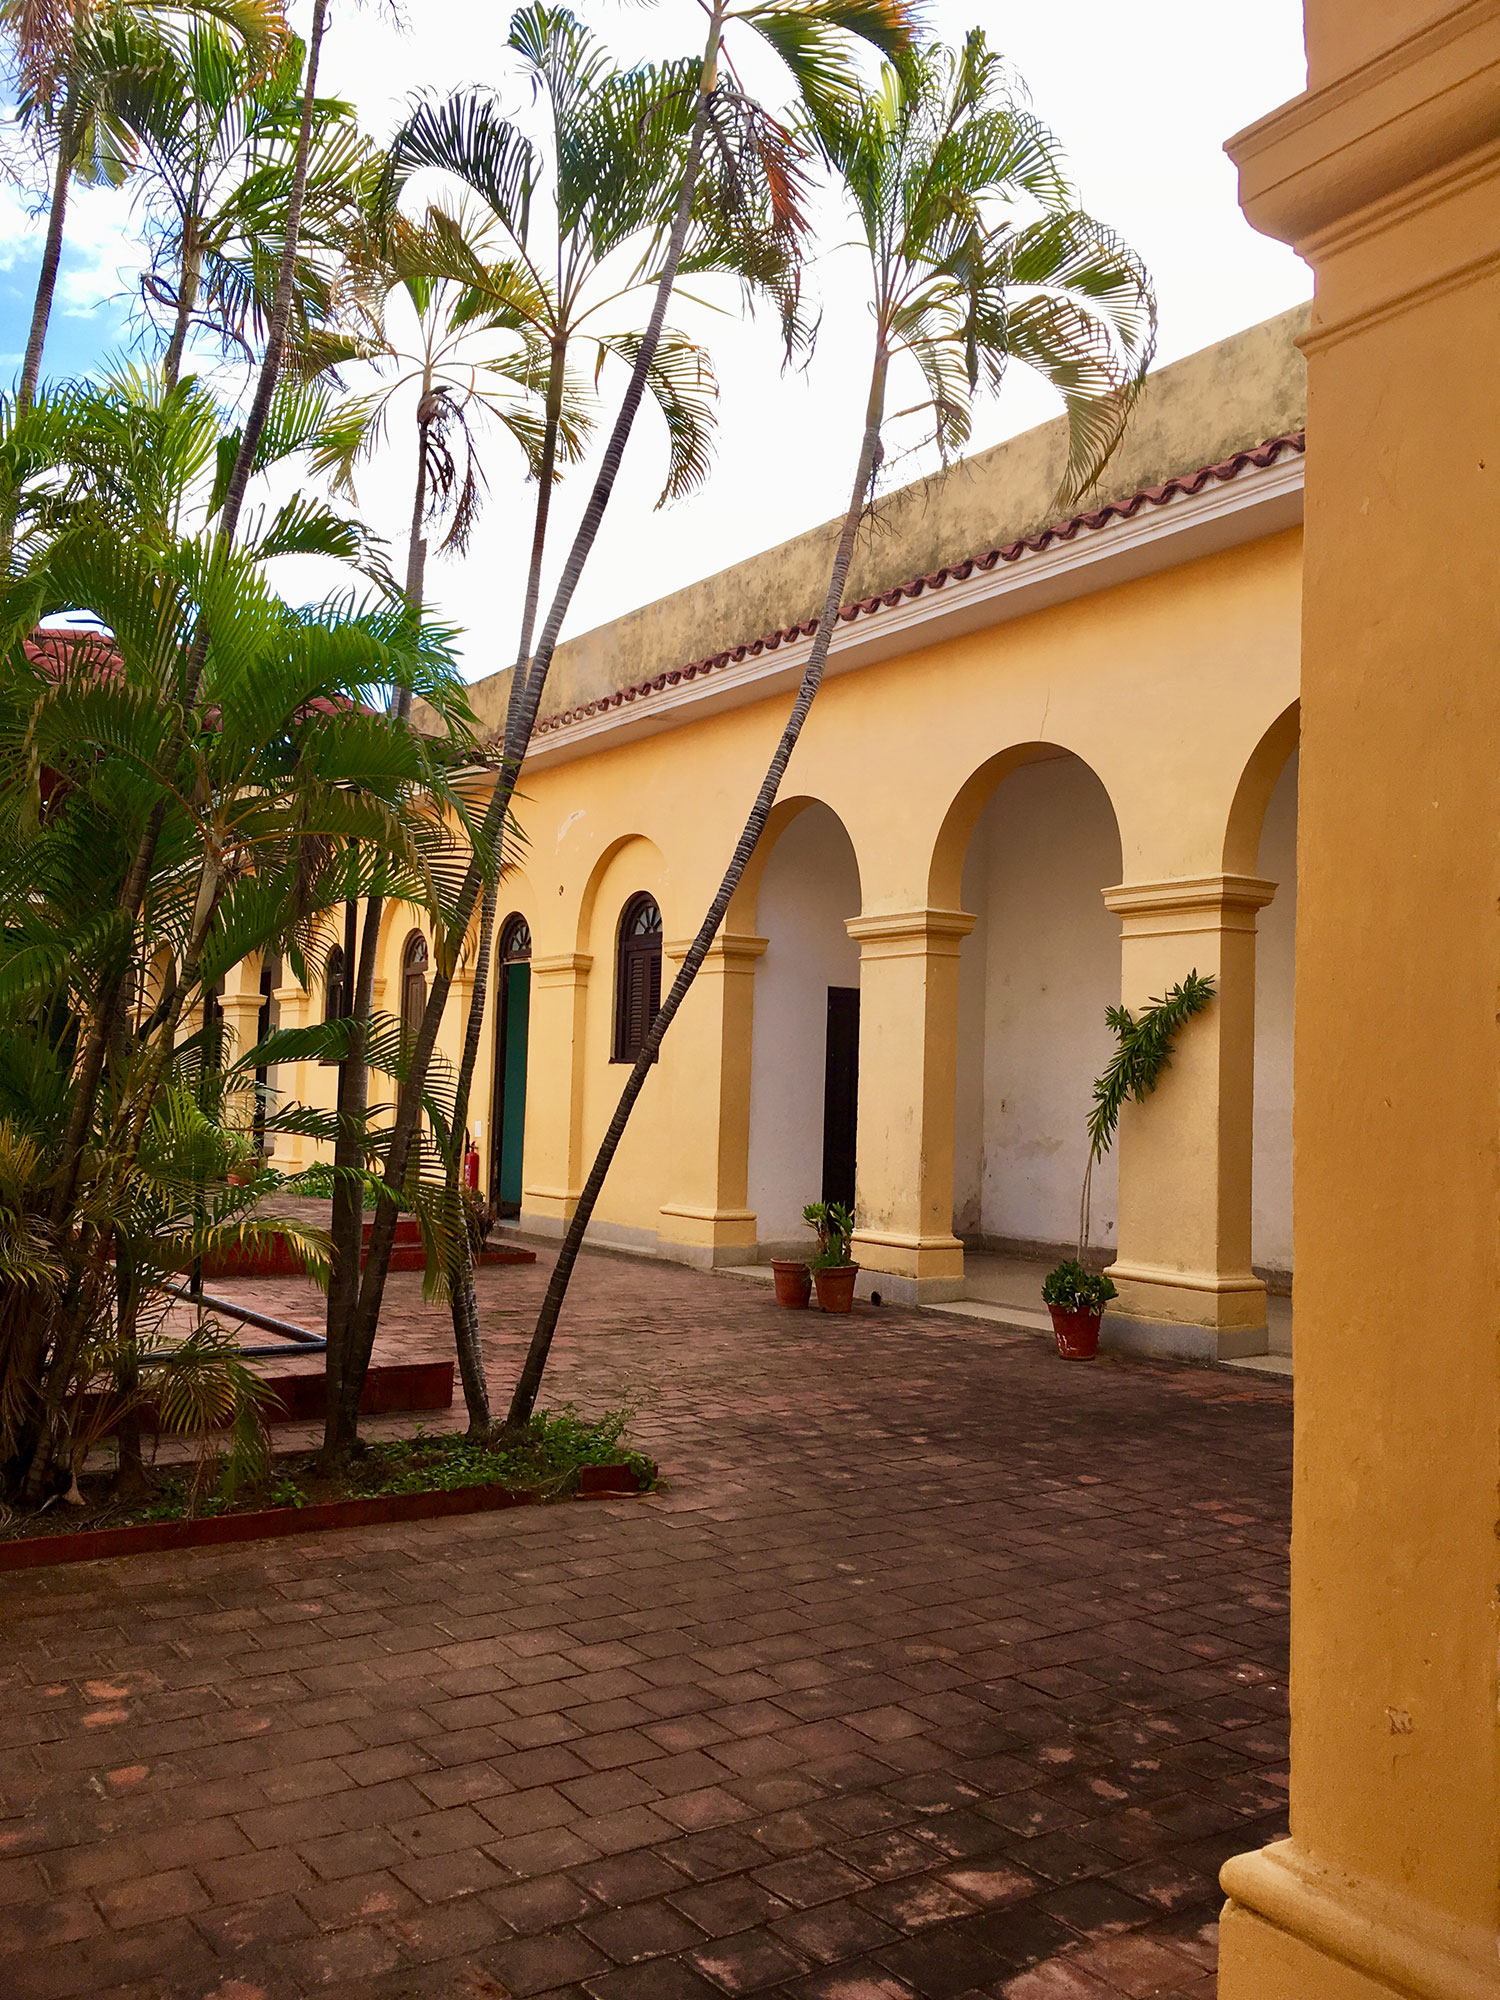 Hammocks_and_Ruins_What_to_Do_Cuba_colonial_sugar_barons_convent_Francis_bell_tower_museum_town_Trinidad_26.jpg